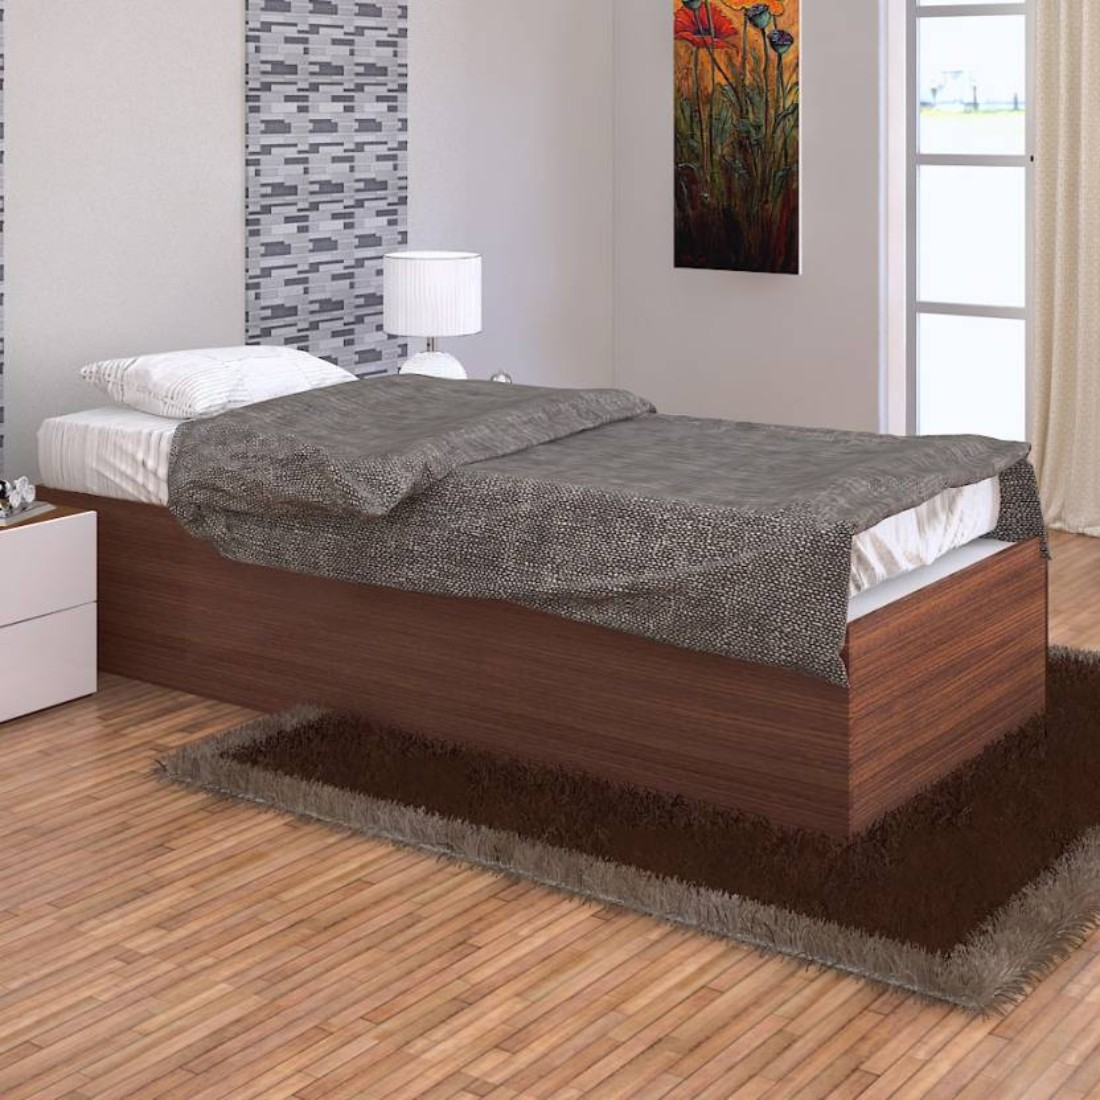 Ria Engineered Wood Box Storage Single Bed in Walnut Colour by HomeTown